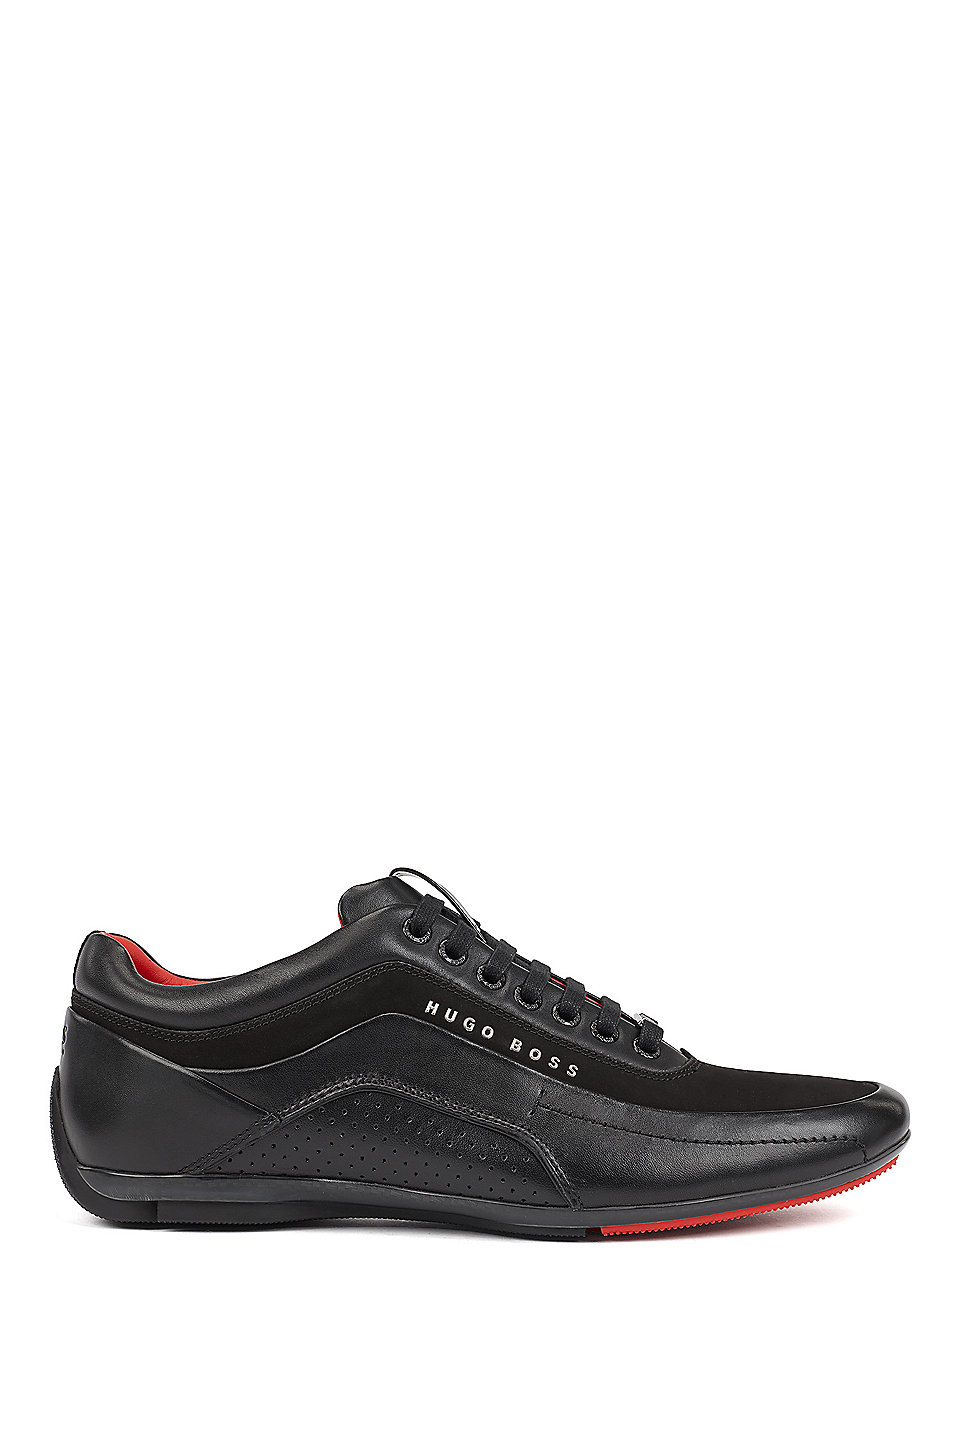 2019 wholesale price top quality clearance sale BOSS - Trainers in leather and carbon fibre